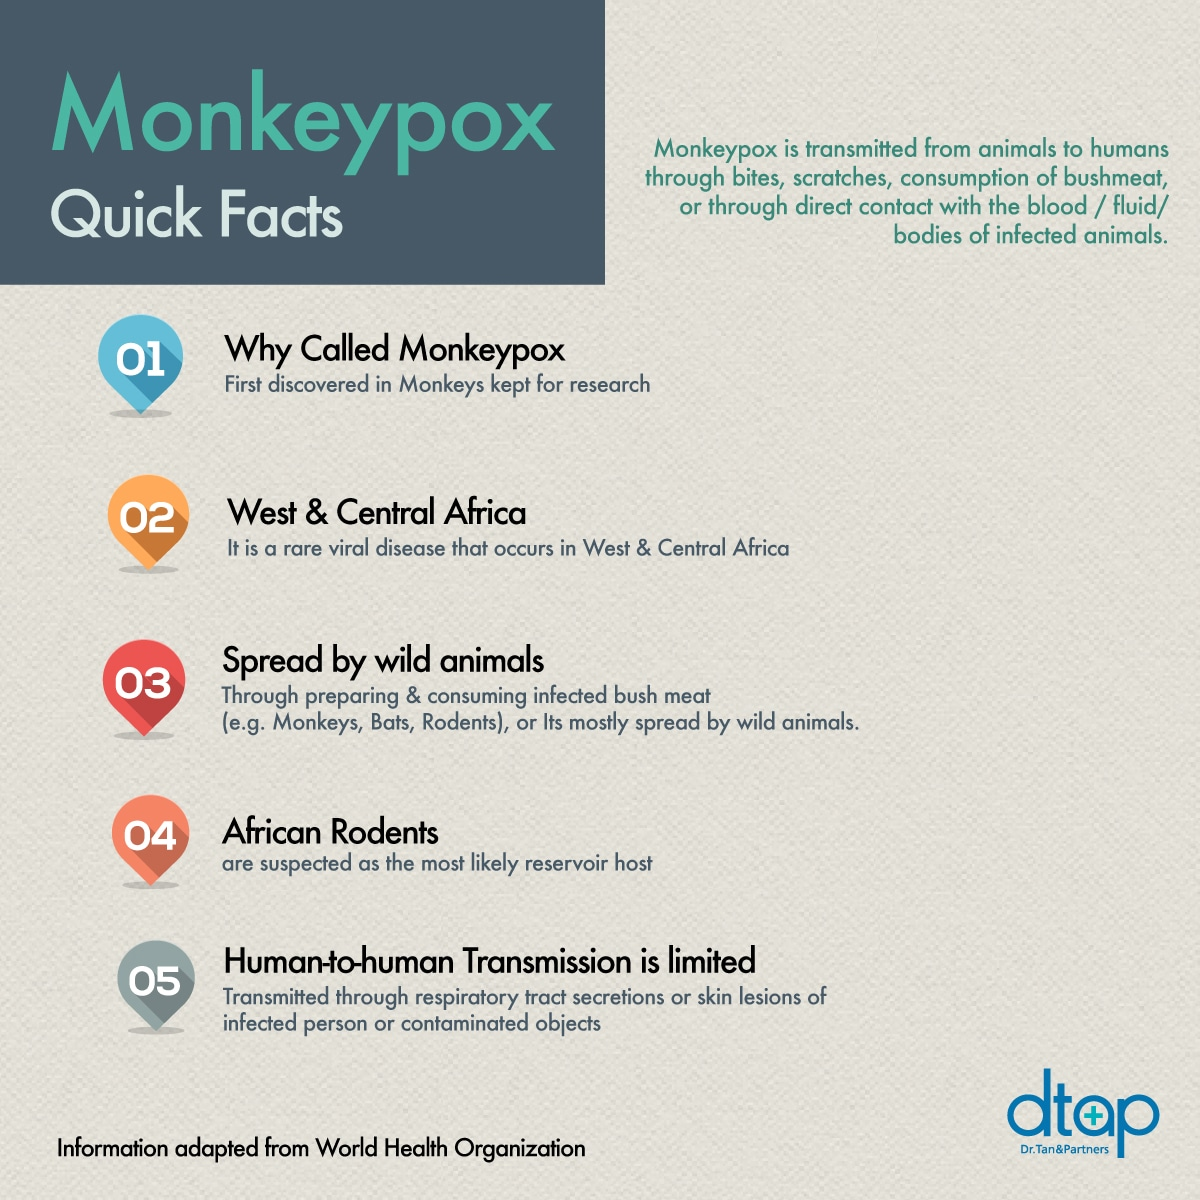 monkeypox quick facts